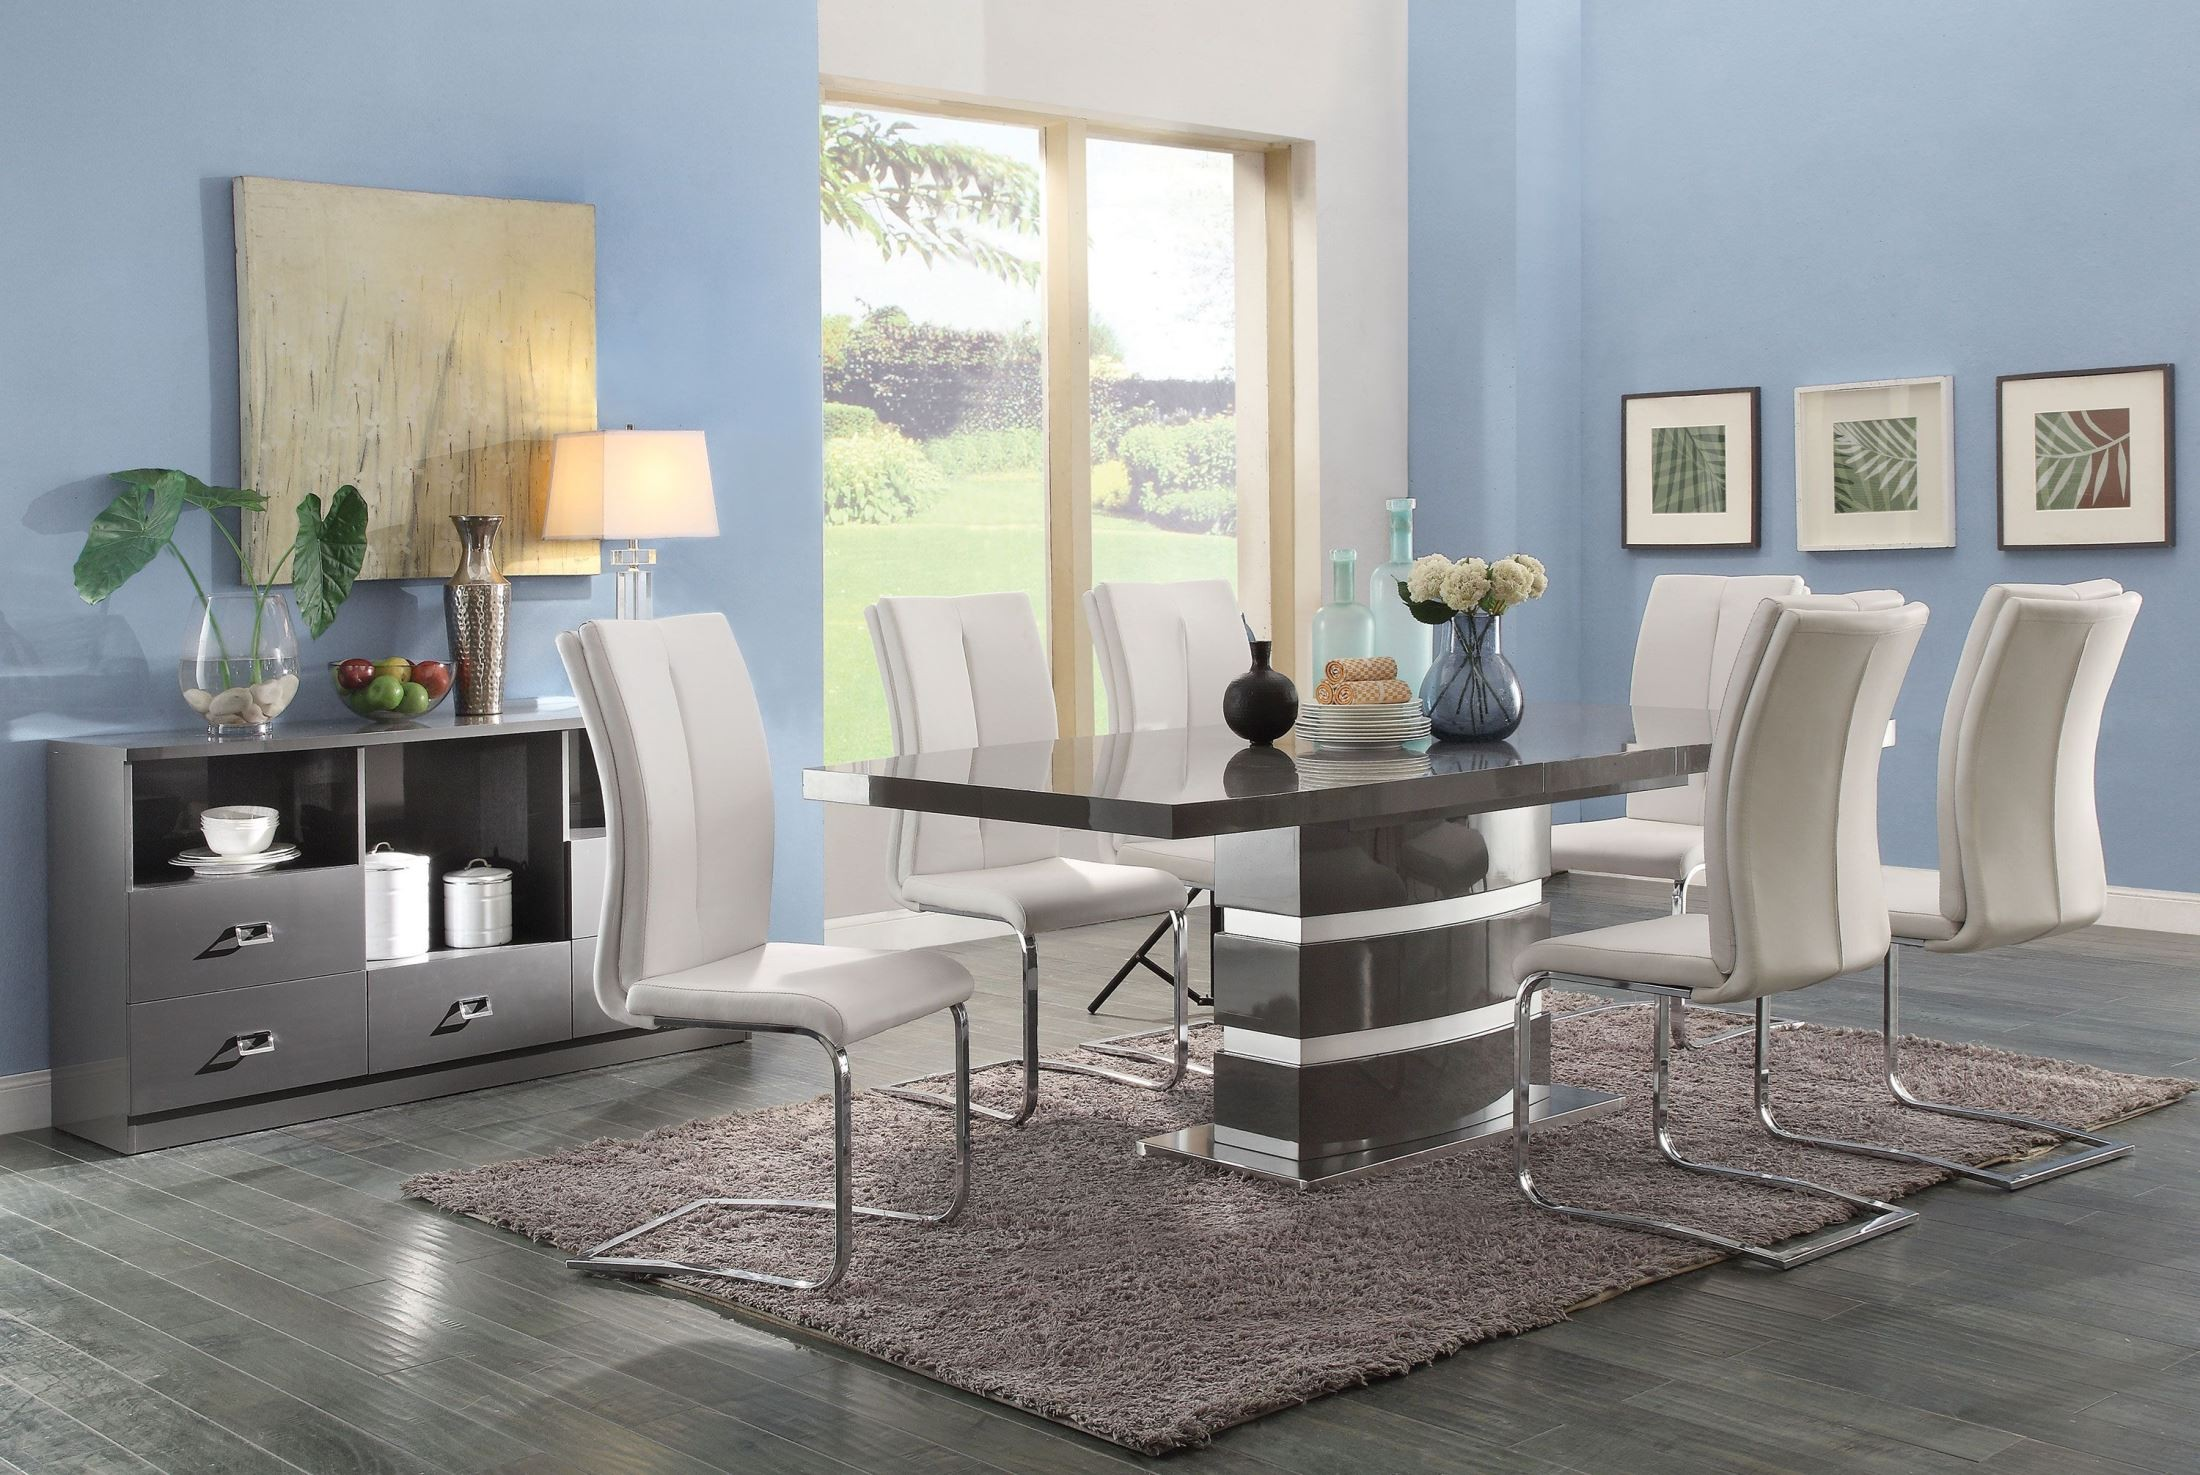 Lowry 7 Piece Dining Table Set High Gloss Taupe And Metal Chrome Dining Table With 6